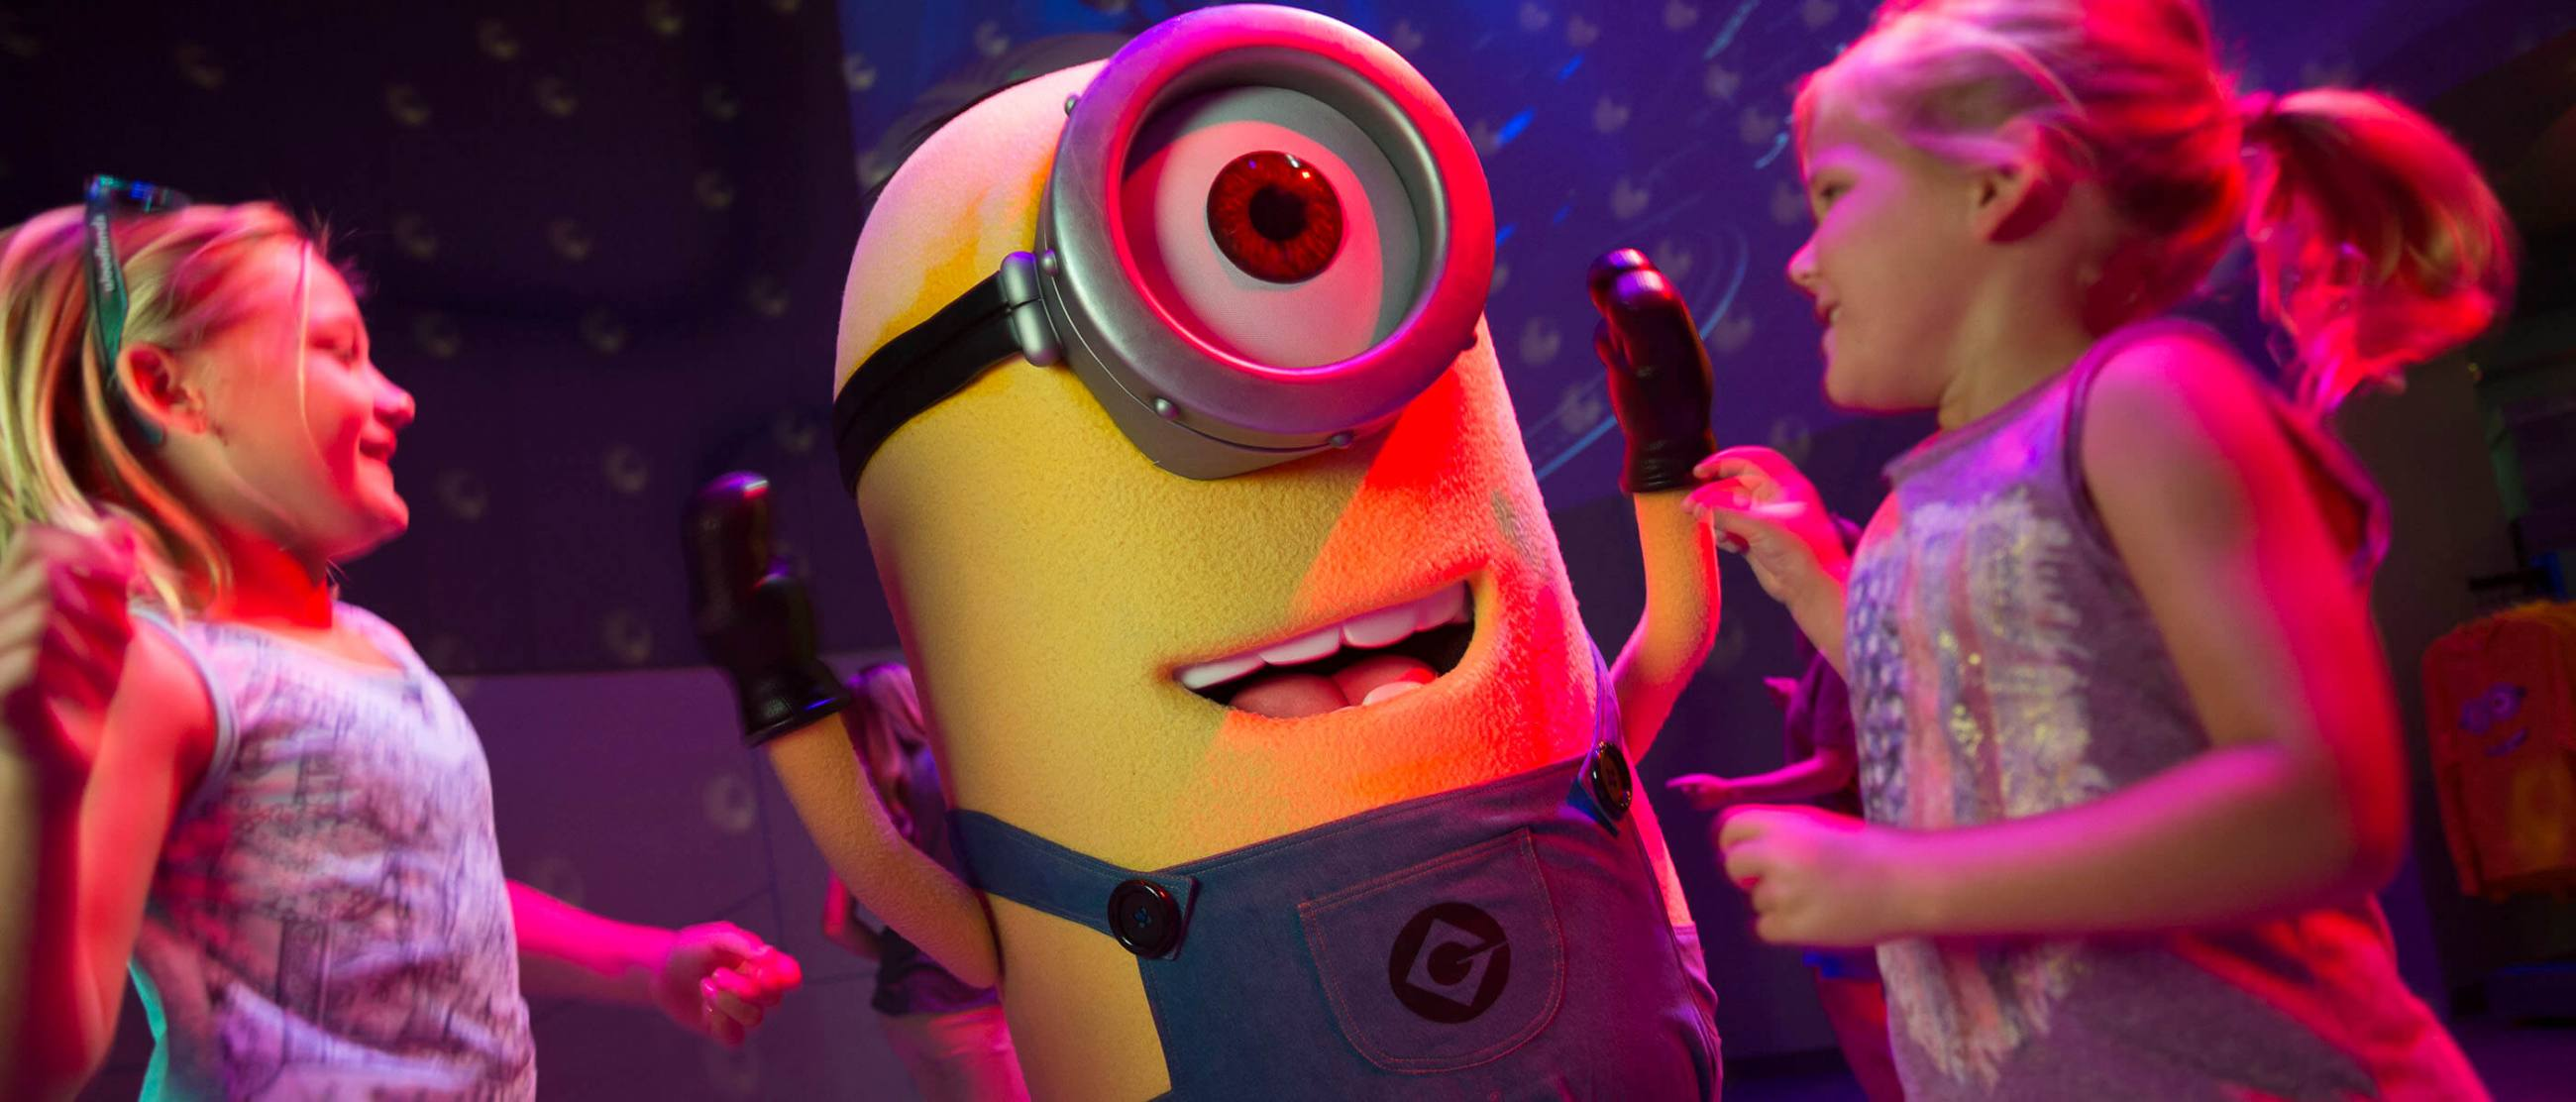 Despicable Me: Minion Mayhem | Photo: Universal Studios Hollywood